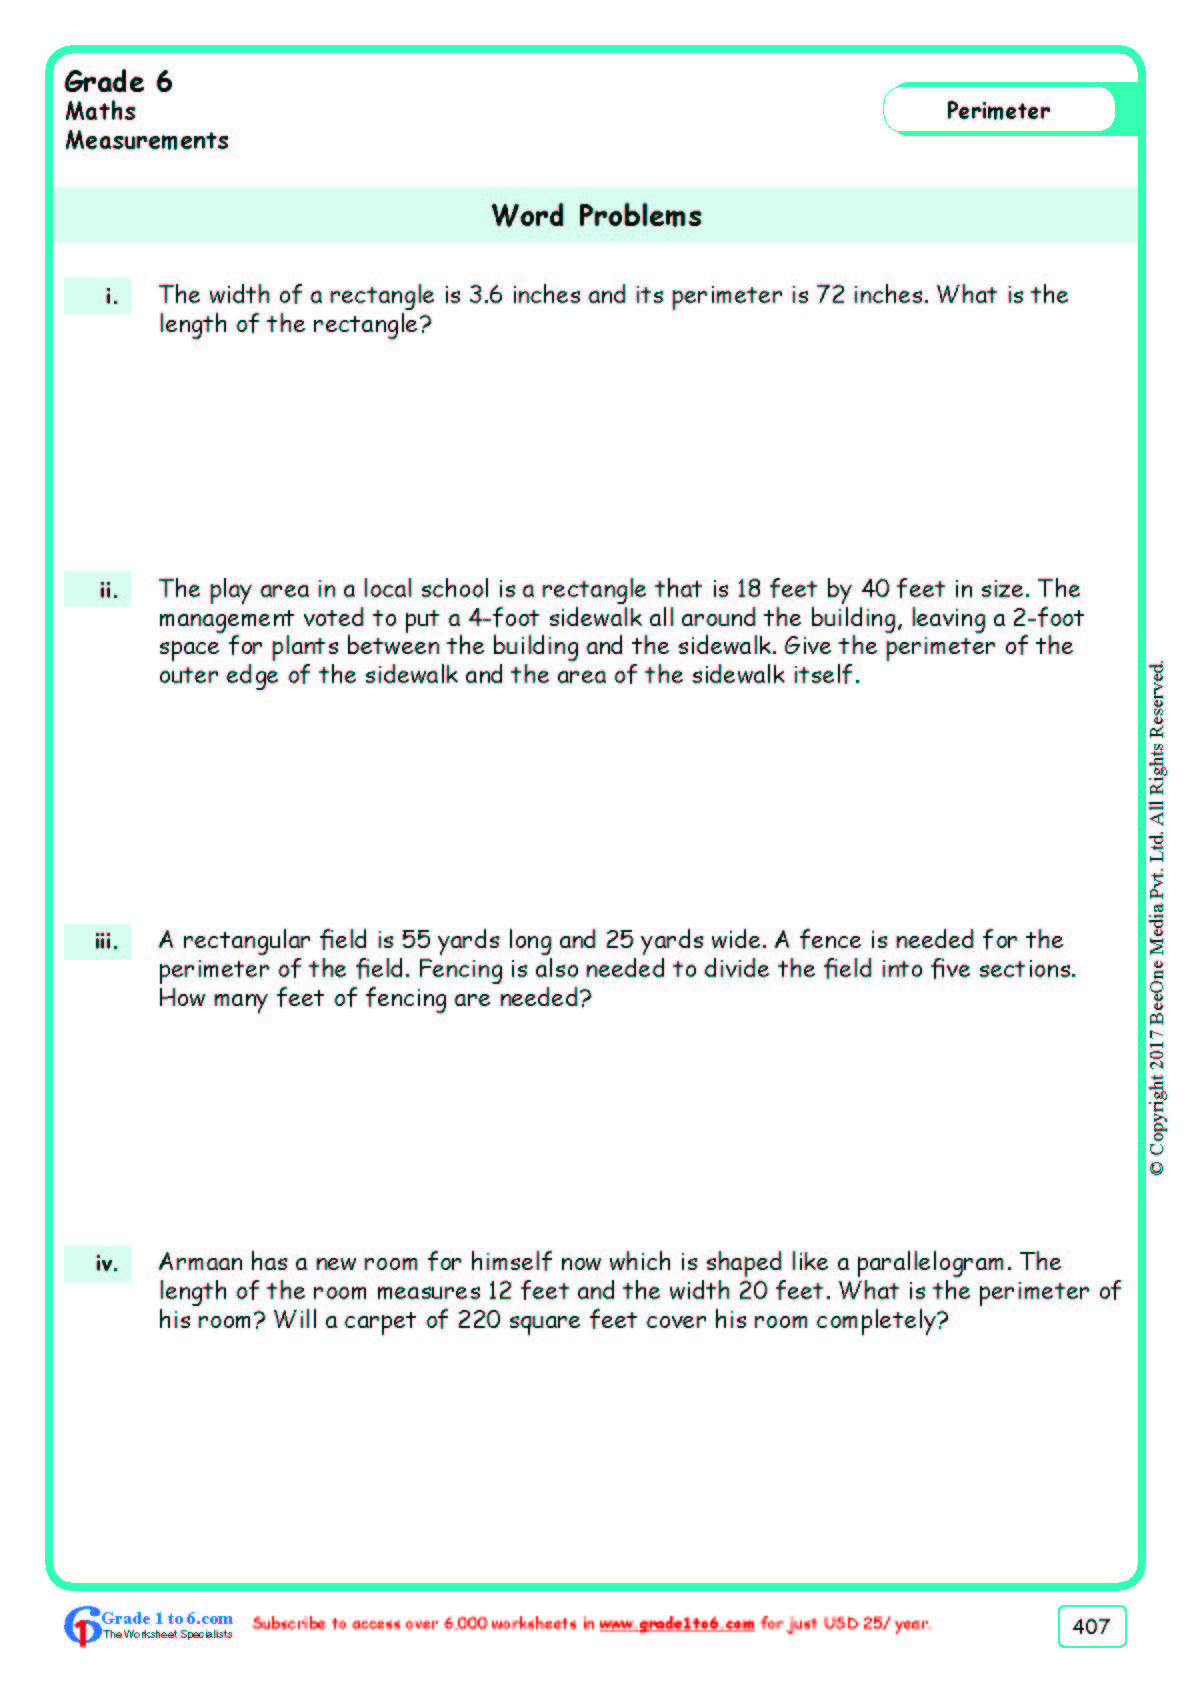 hight resolution of Perimeter Word Problems Worksheets www.grade1to6.com